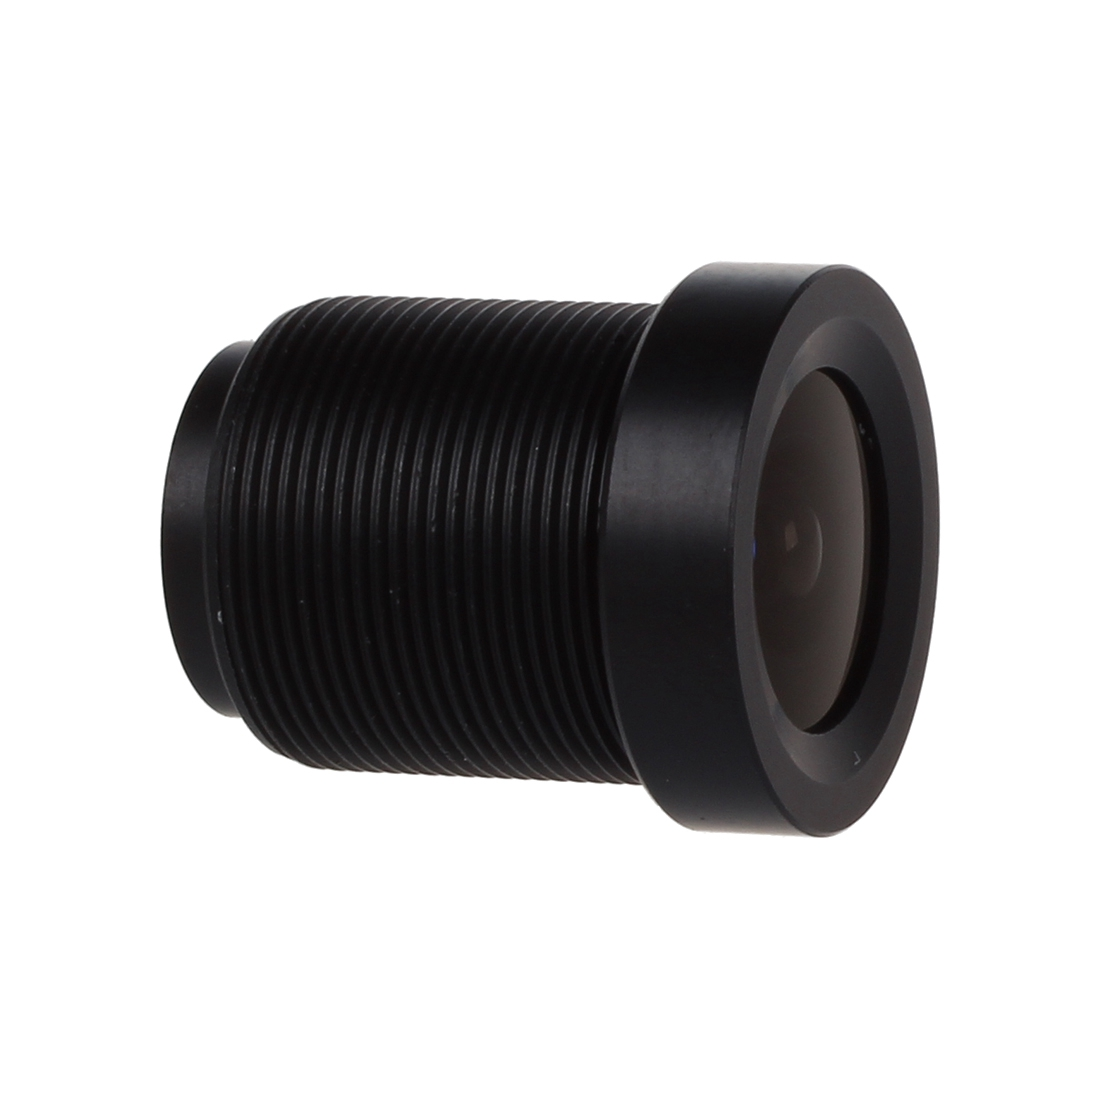 2 Packs 1/3 CCTV 2.8mm Lens Black for CCD Security Box Camera mool 1 3 cctv 2 8mm lens black for ccd security box camera